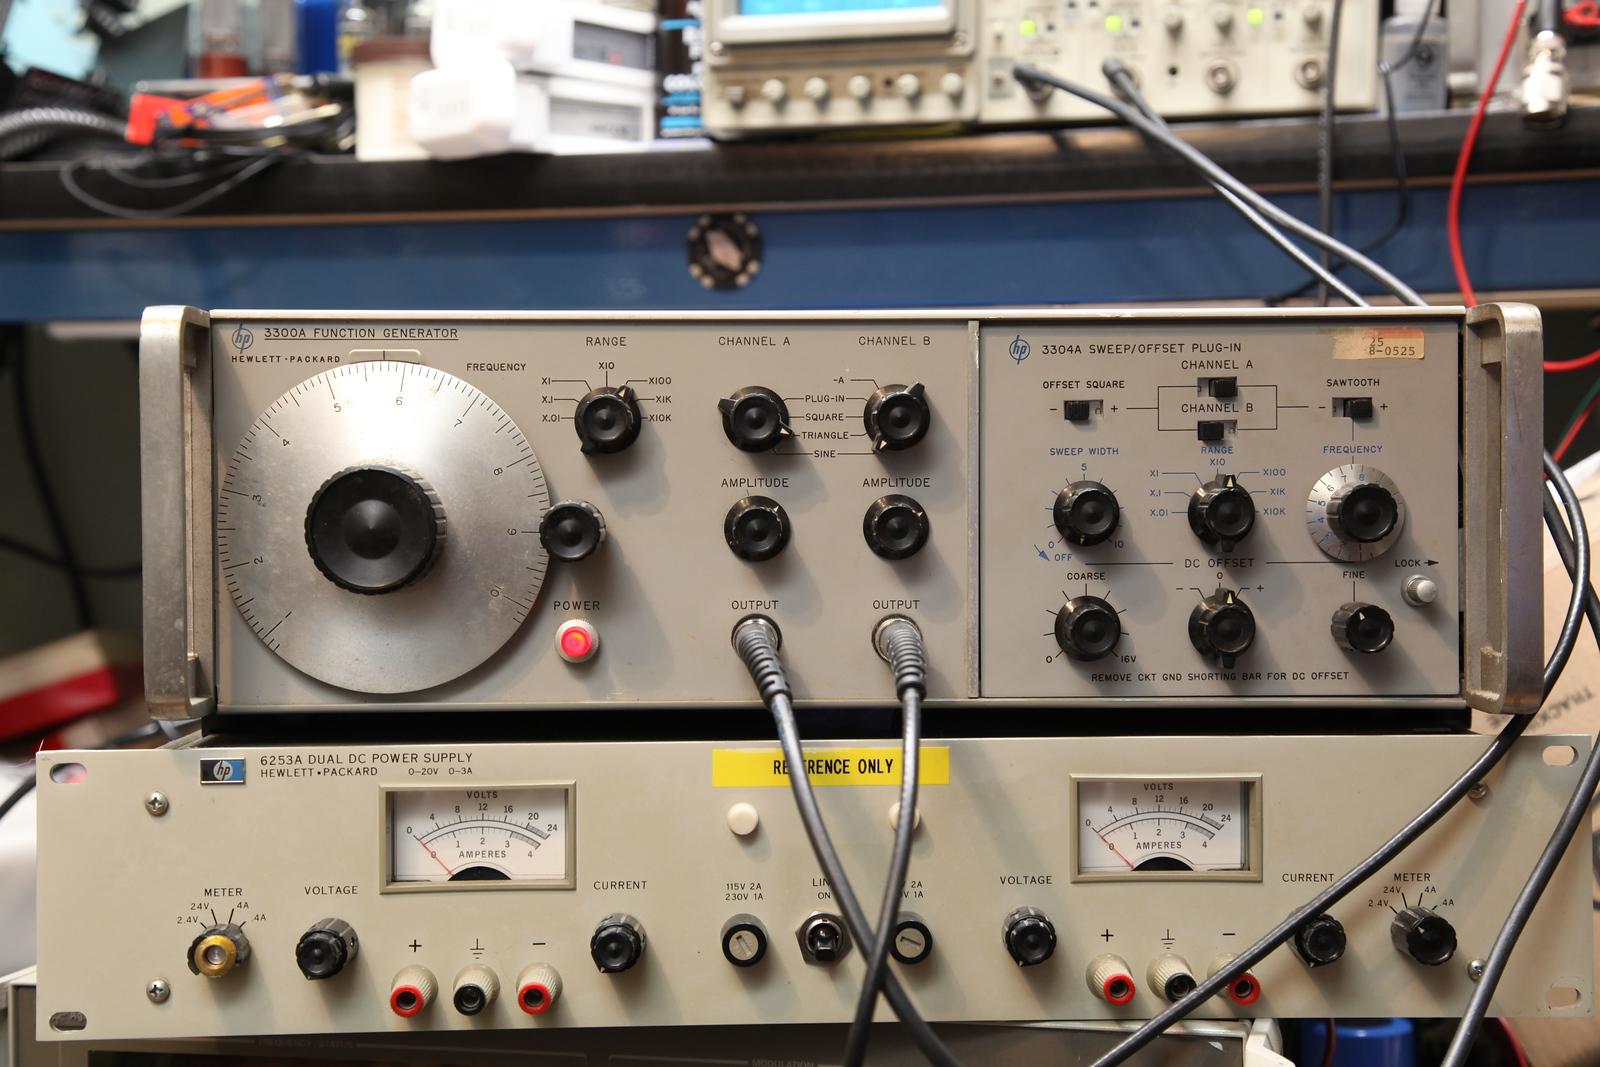 Test Equipment Anonymous (TEA) group therapy thread - Page 260